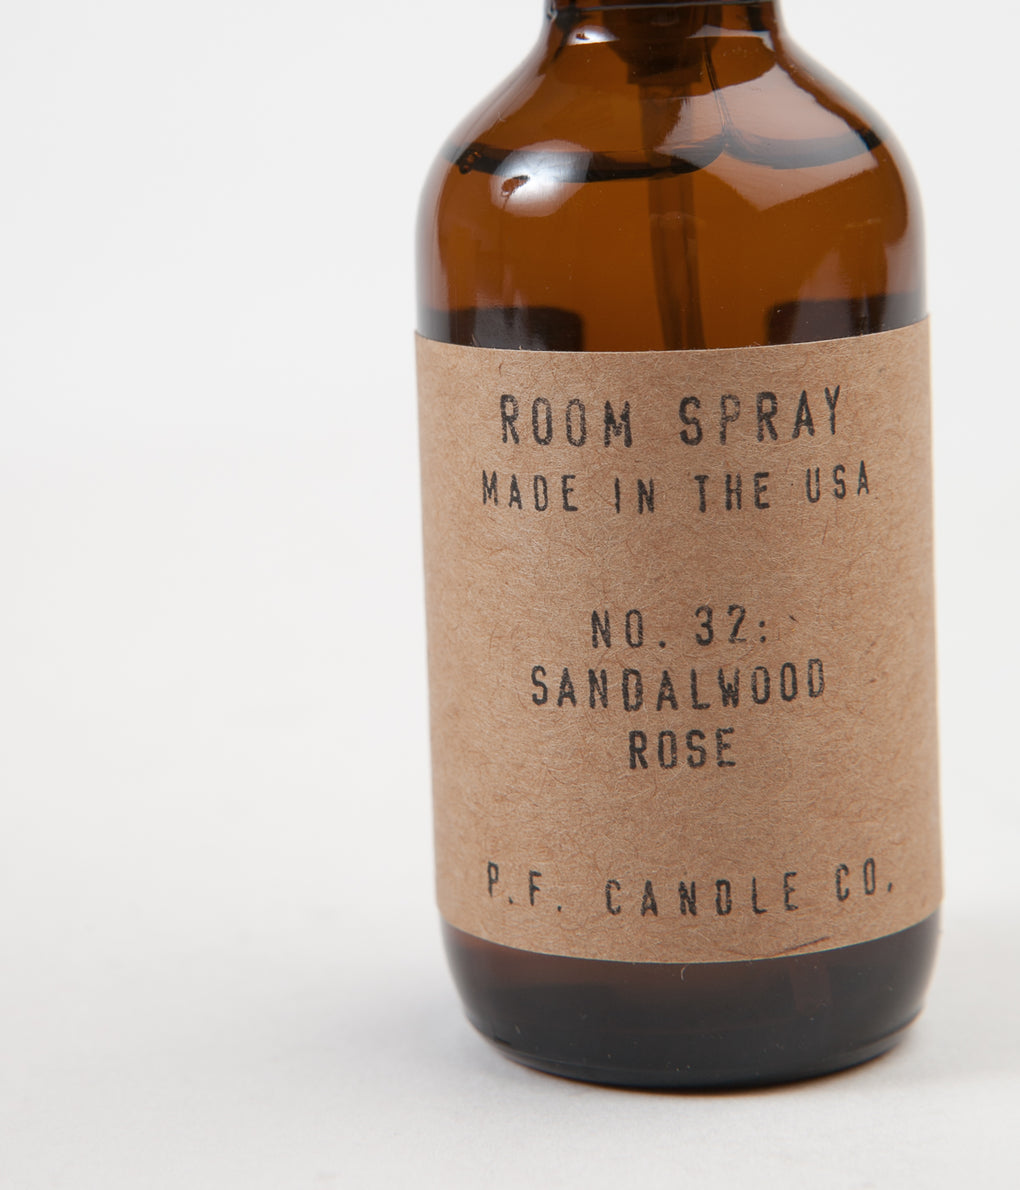 P.F. Candle Co. No. 32 Sandalwood Rose Room Spray - 2oz